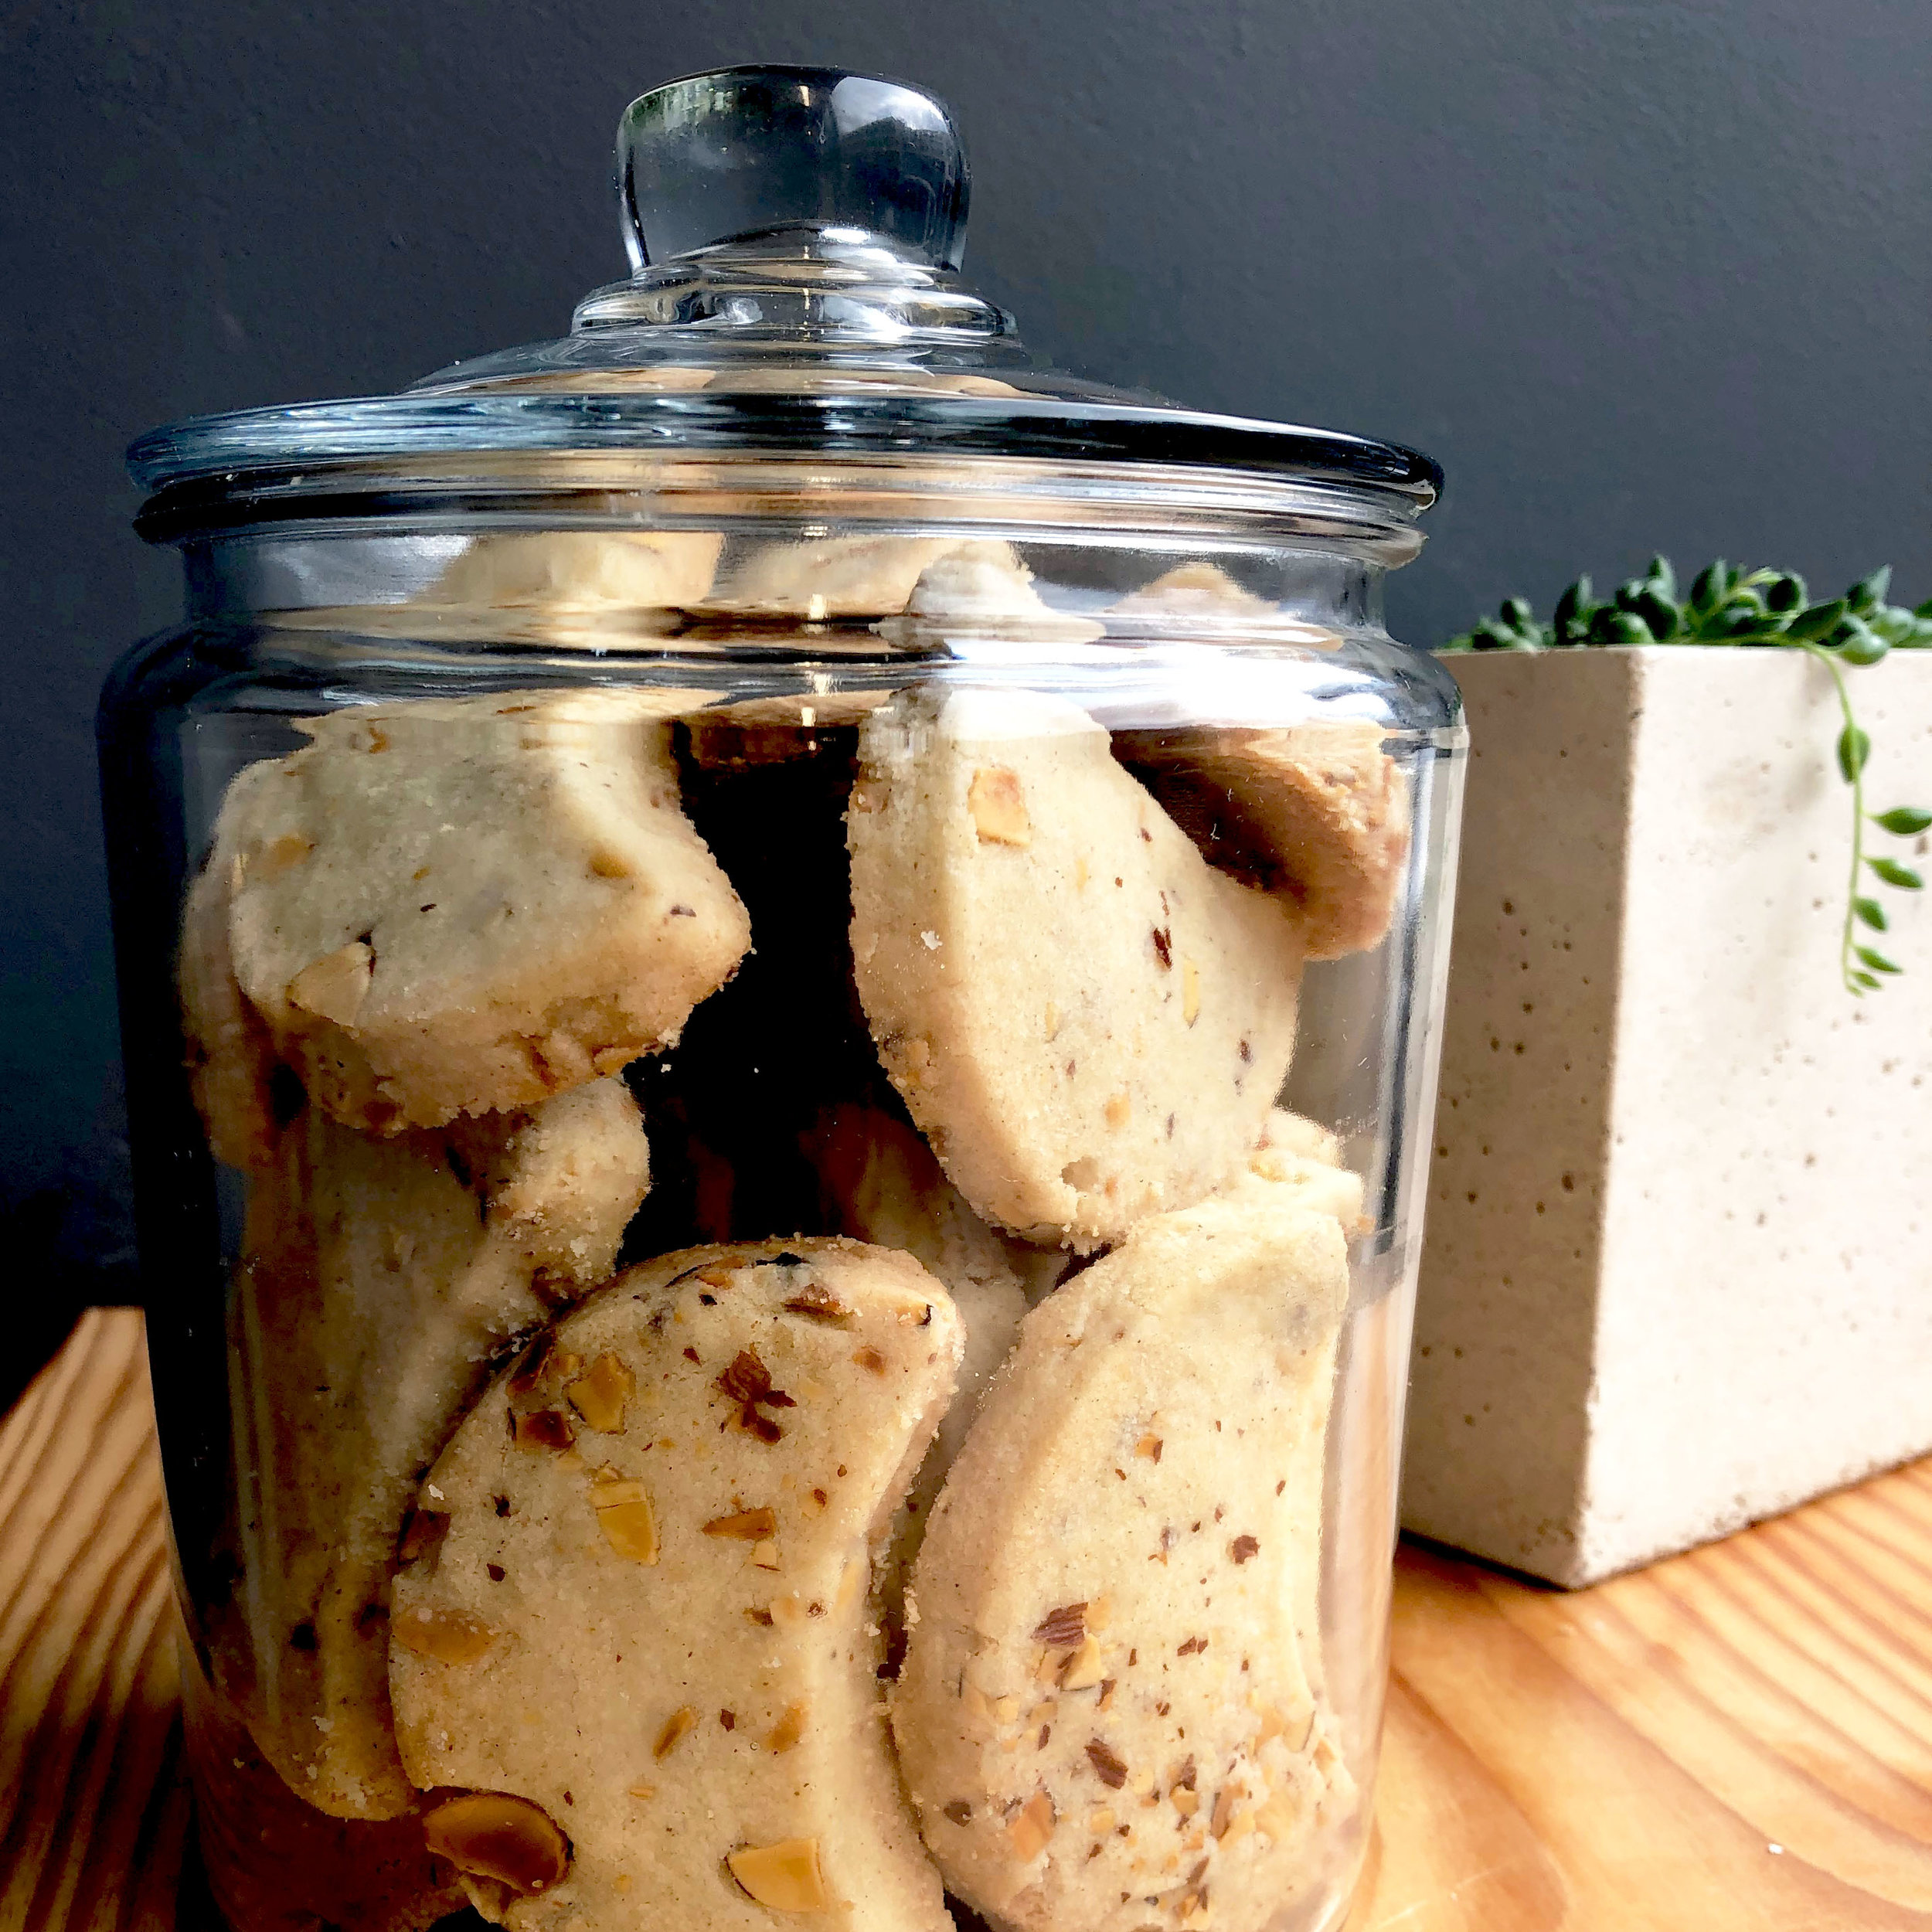 SHORTBREAD COOKIES WITH ALMOND & CARDAMON